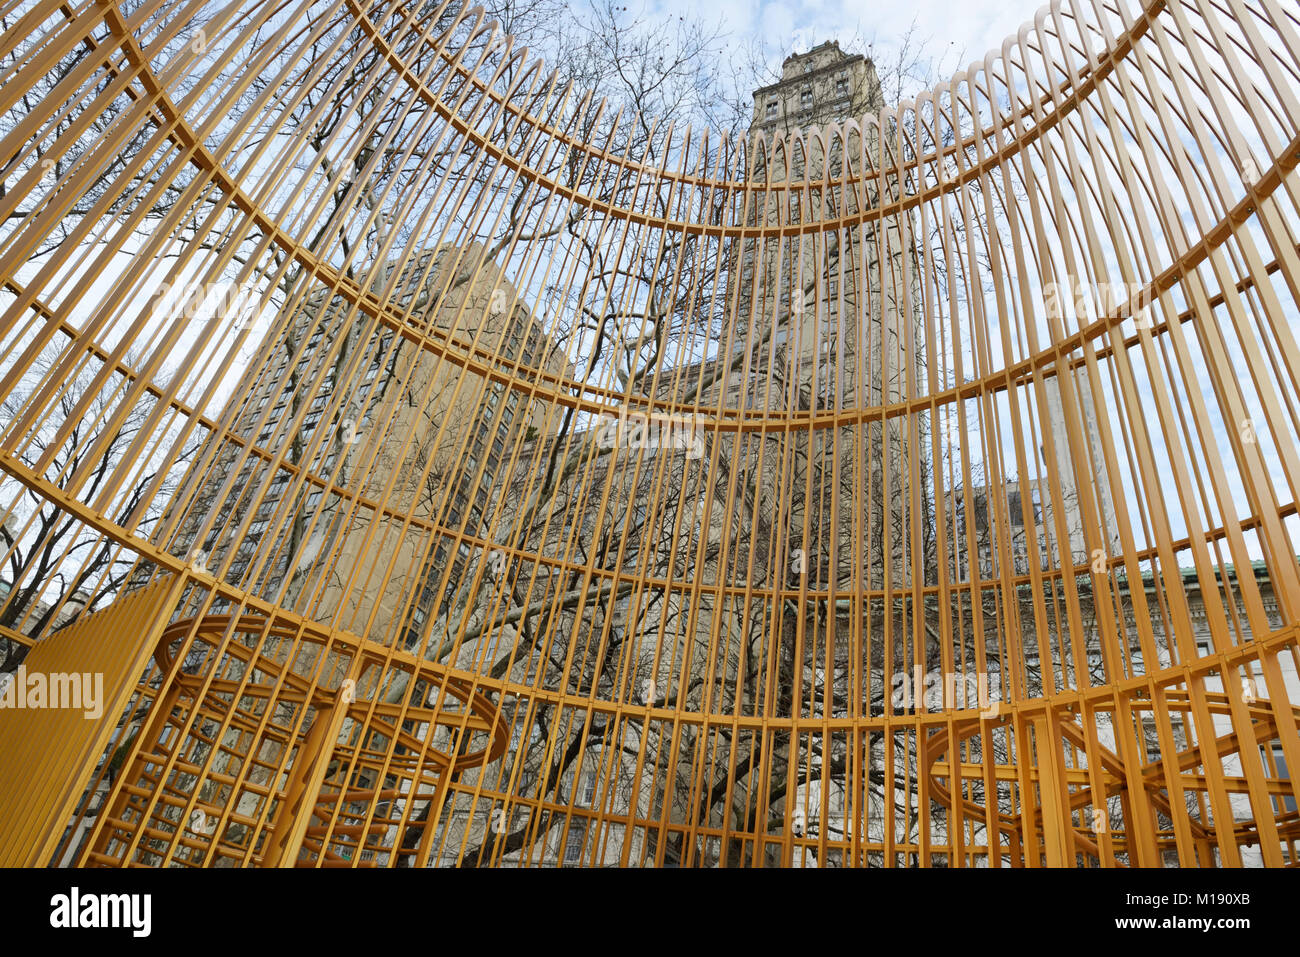 Ai Weiwei sculpture installation in Central Park, Freedman Plaza, NYC, 'Gilded Cage' - Stock Image